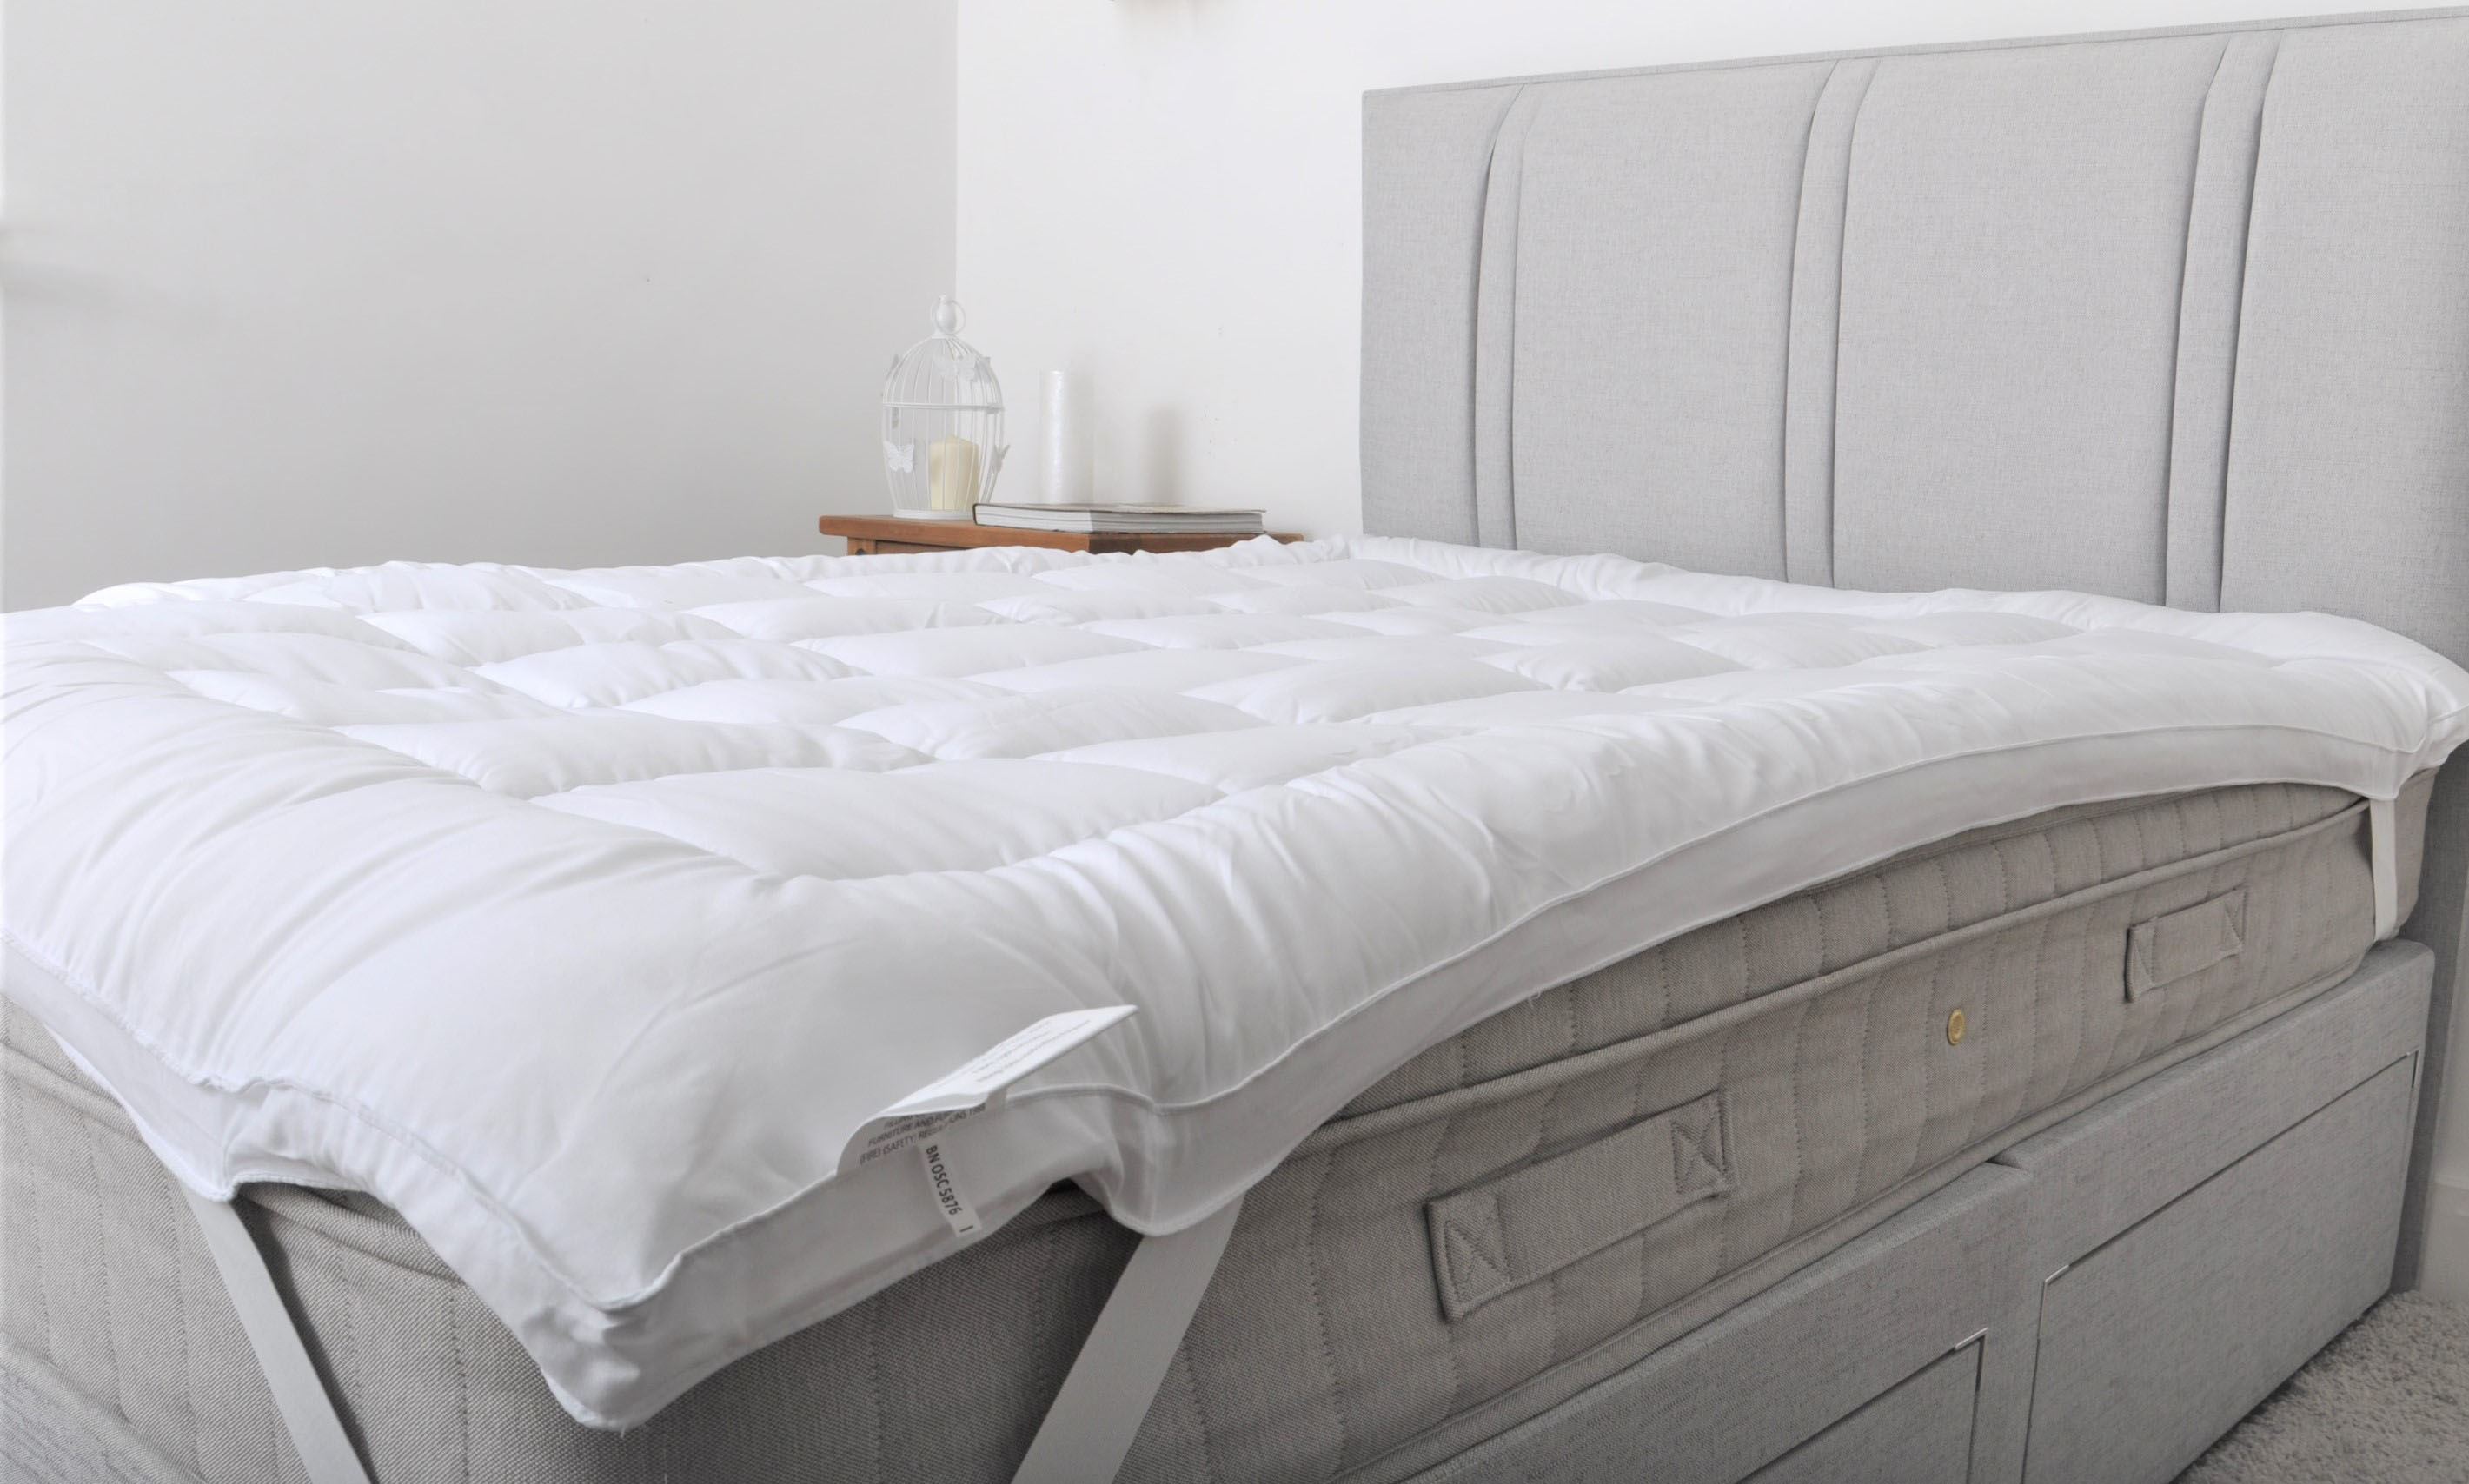 Feather Mattress Topper Reviews by www.dailysleep.org